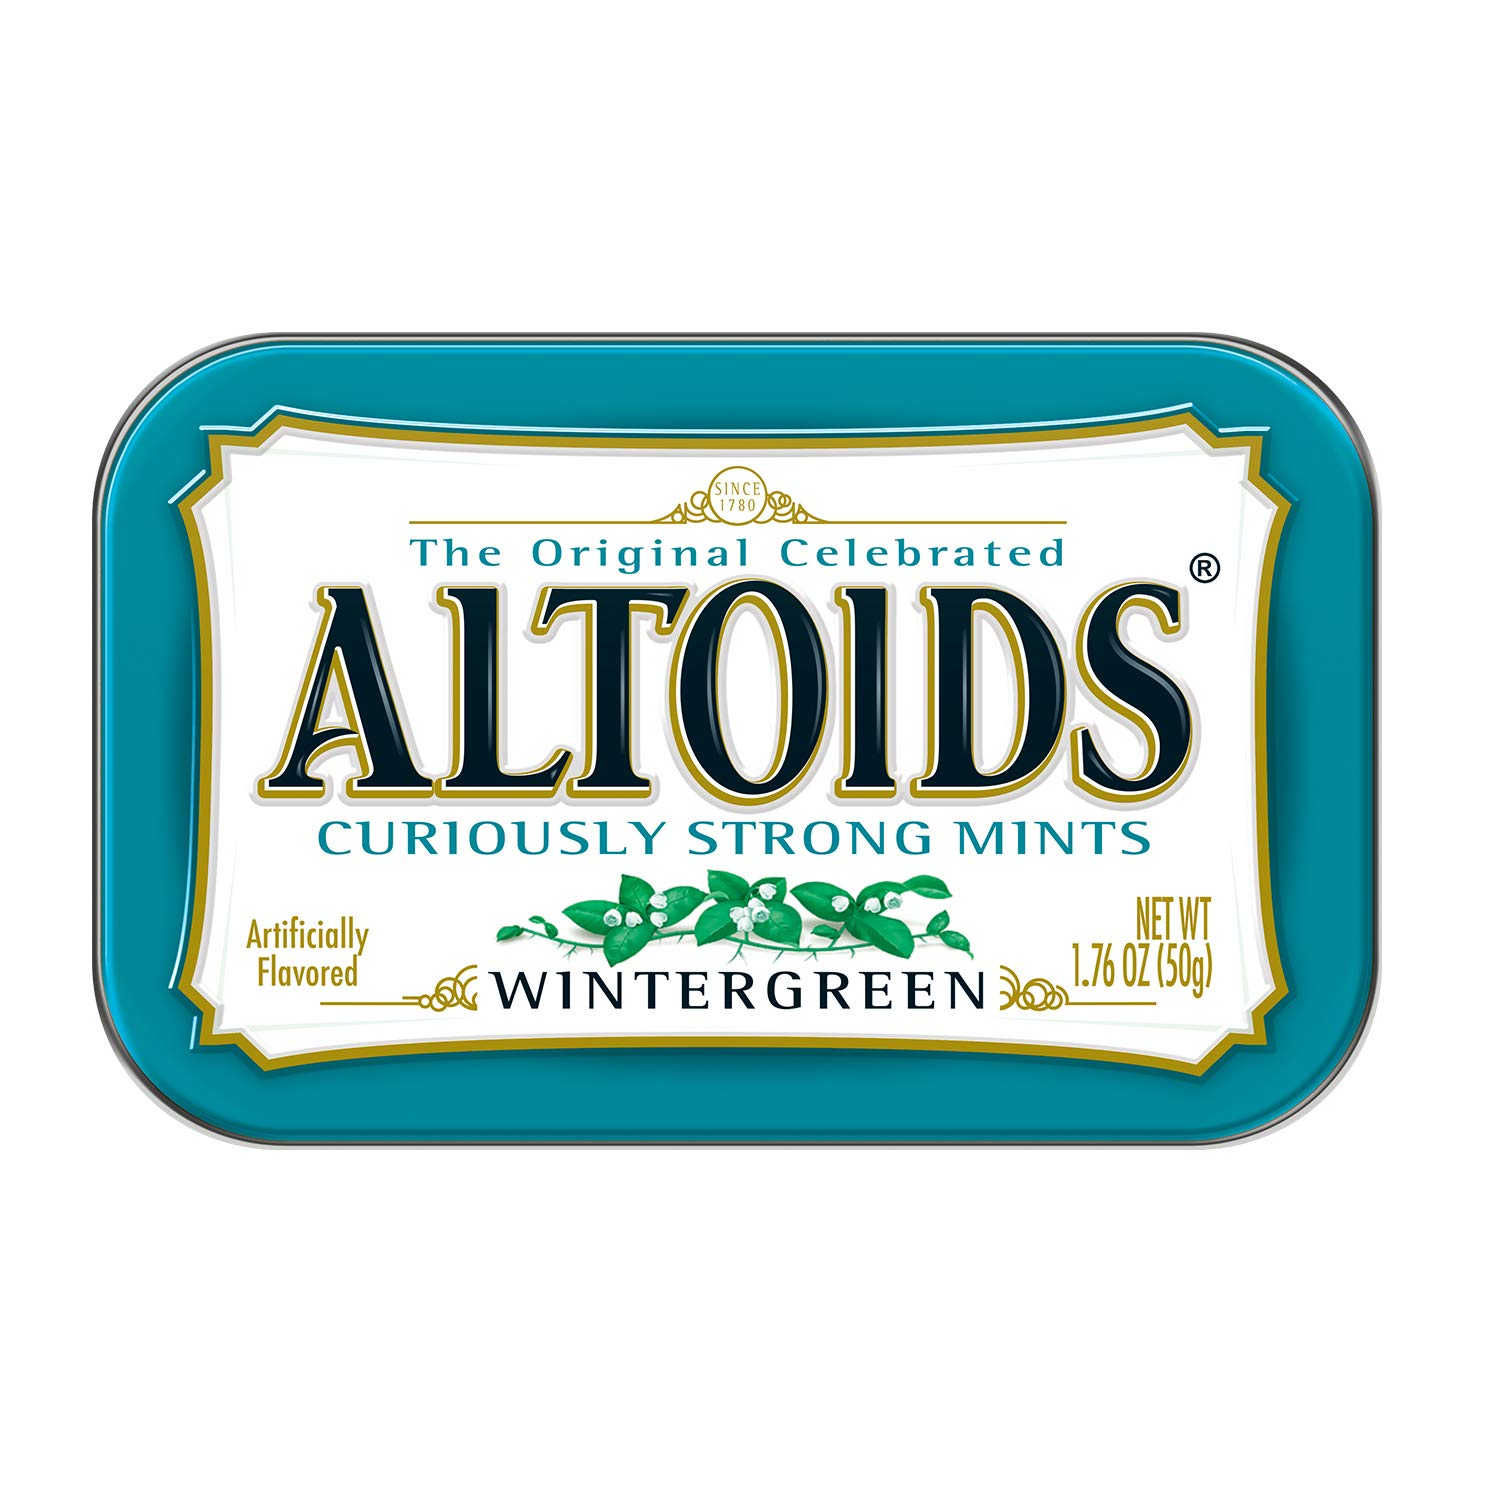 ALTOIDS Classic Wintergreen Breath Mints, 1.76-Ounce Tin (Pack of 12) by Altoids (Image #4)